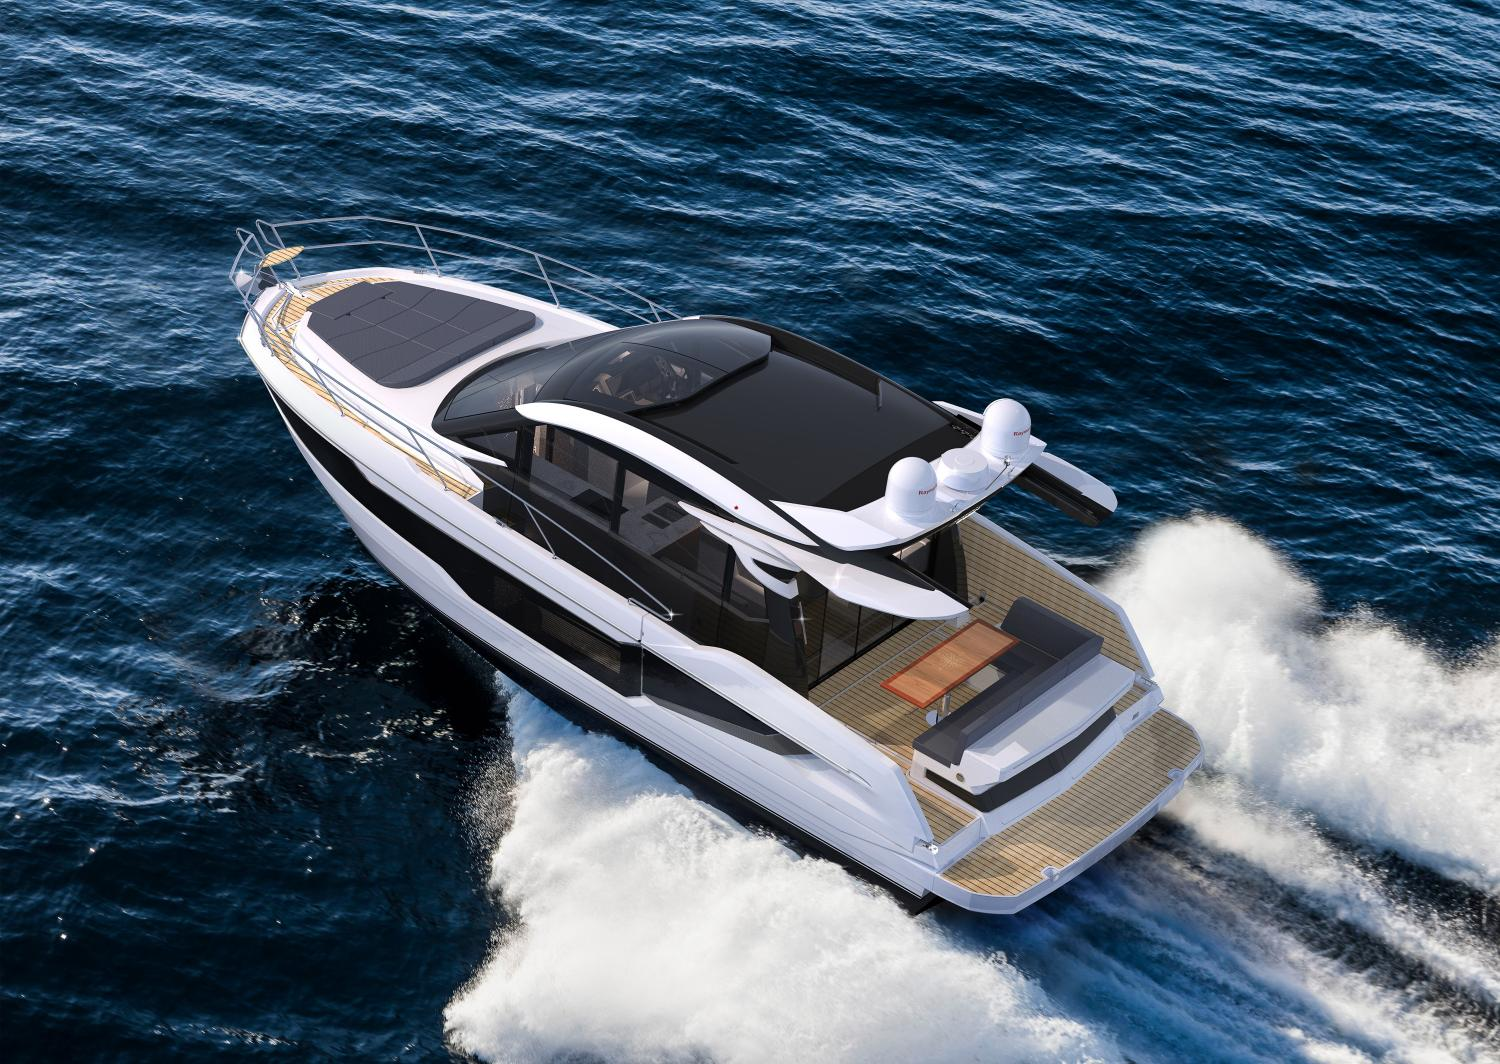 Image 3 for Multi-Award-Winning Galeon Extends Range and Reach